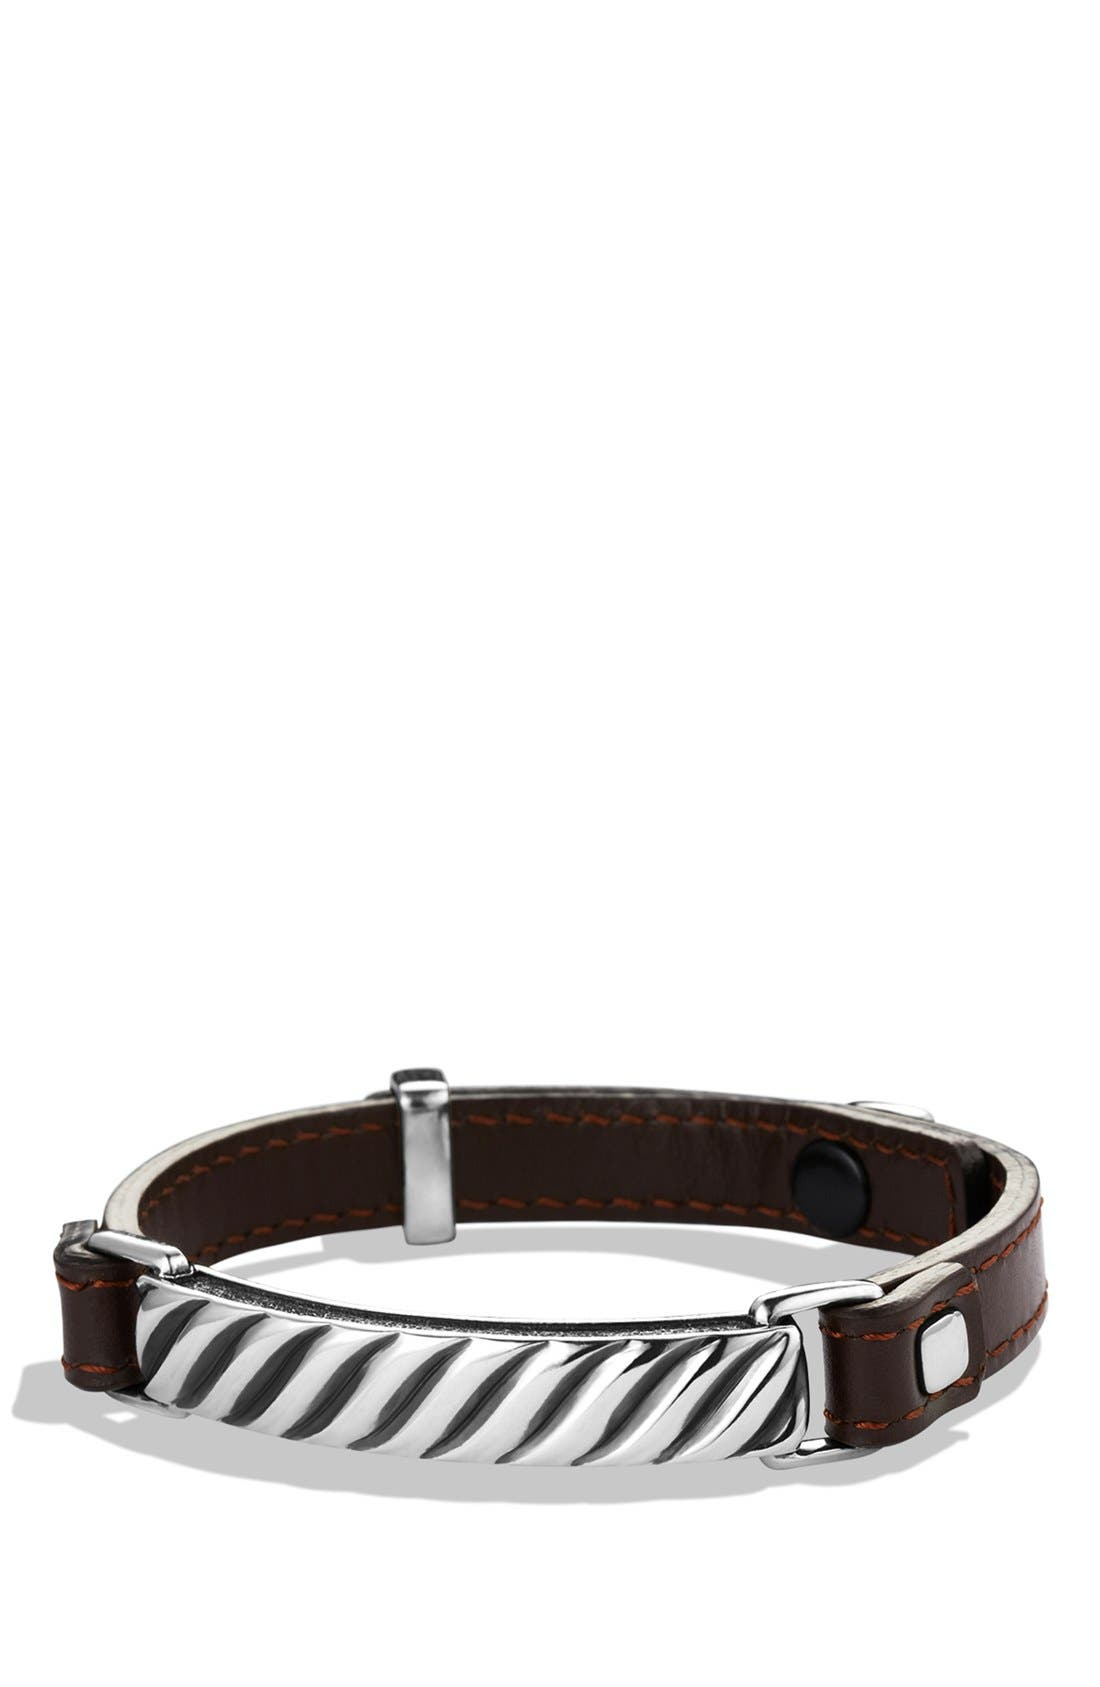 Modern Cable ID Bracelet,                             Main thumbnail 1, color,                             Brown